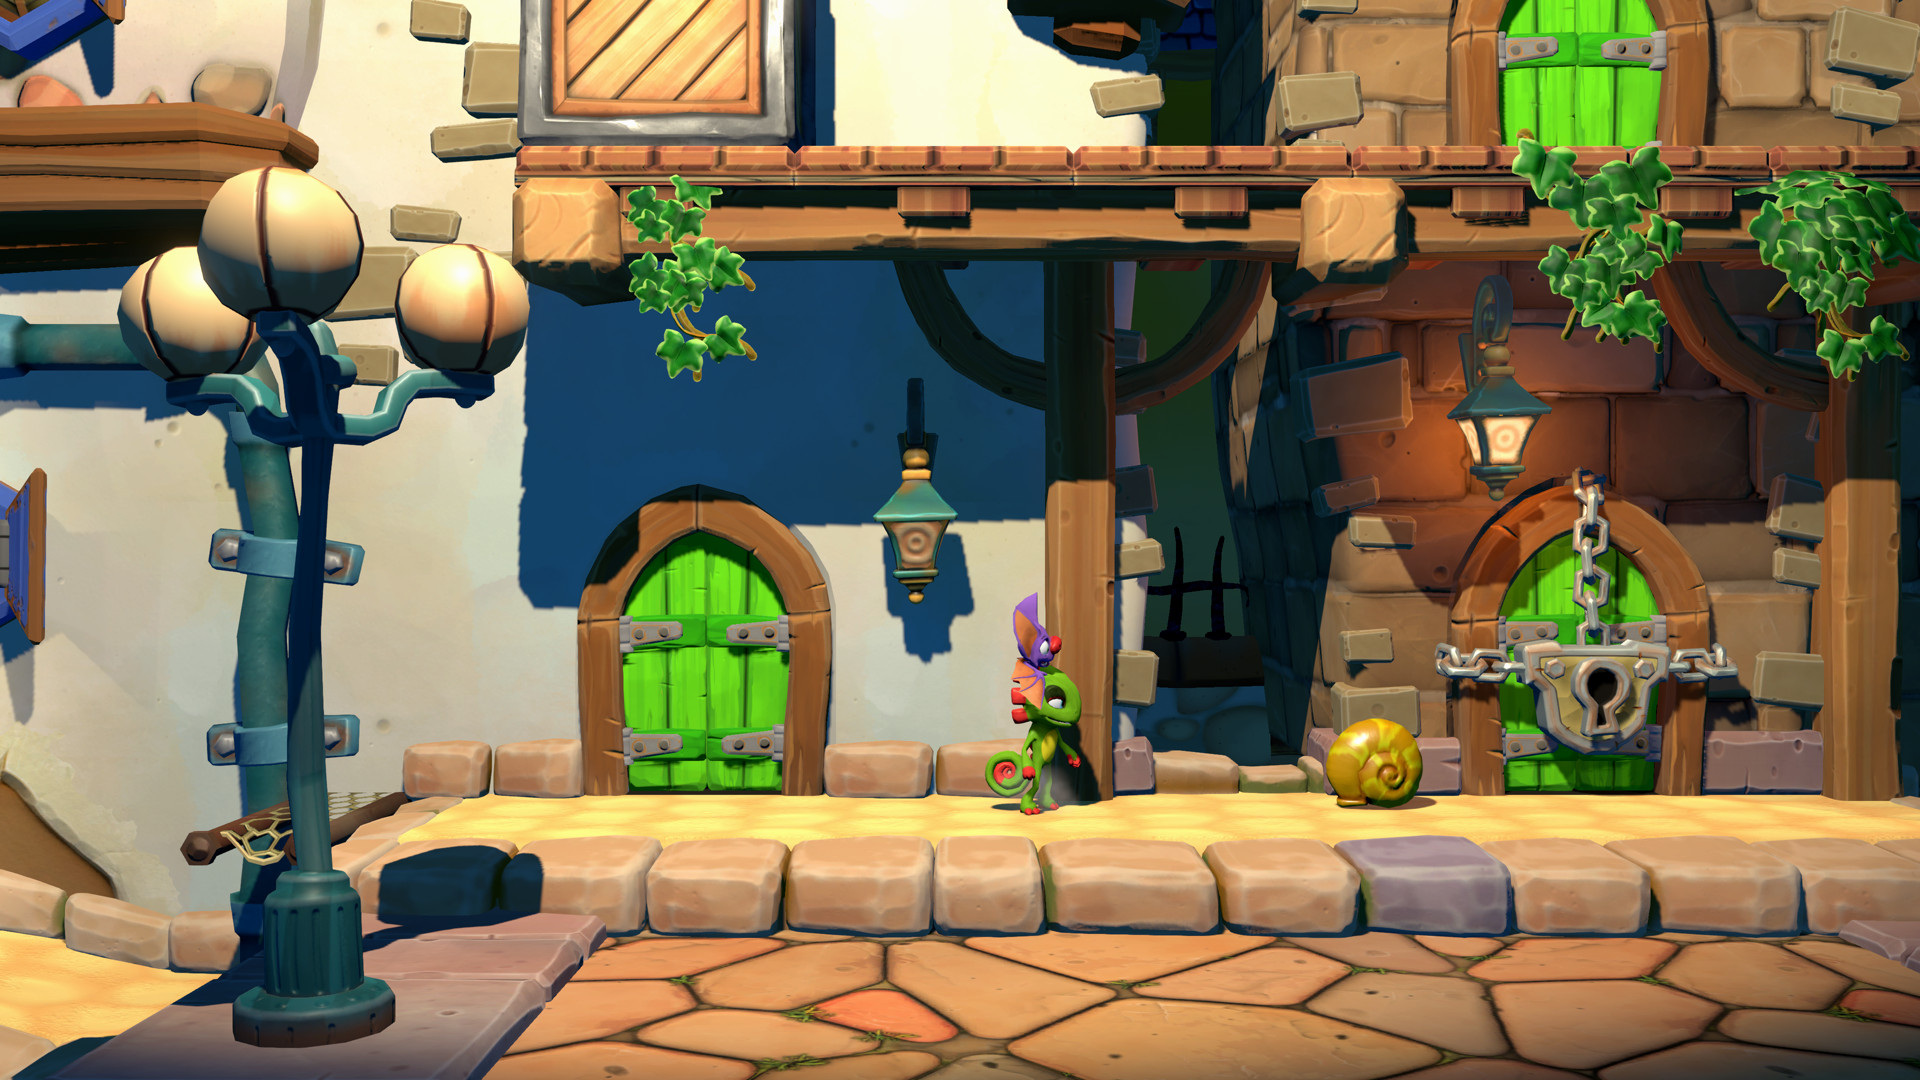 17oyd9vt0e_Yooka-Laylee and the Impossible Lair 2019-11-18 23-05-11.jpg